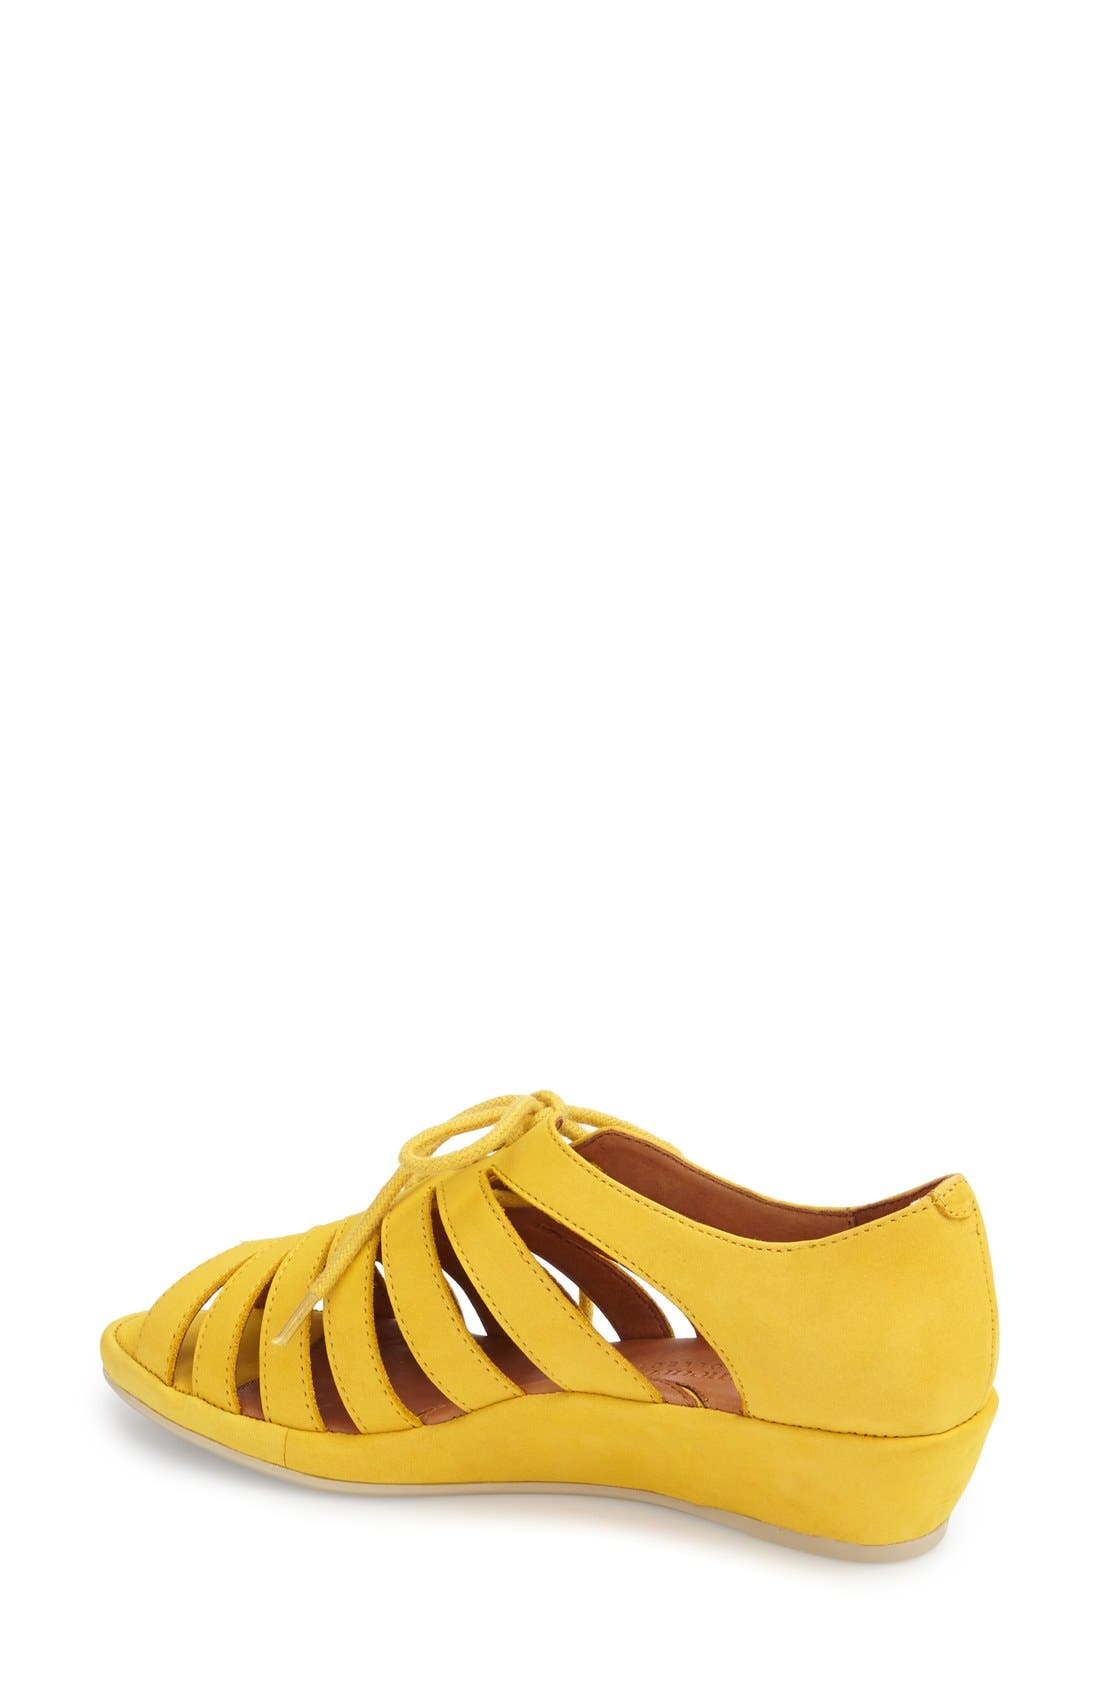 'Bellina' Wedge Sandal,                             Alternate thumbnail 12, color,